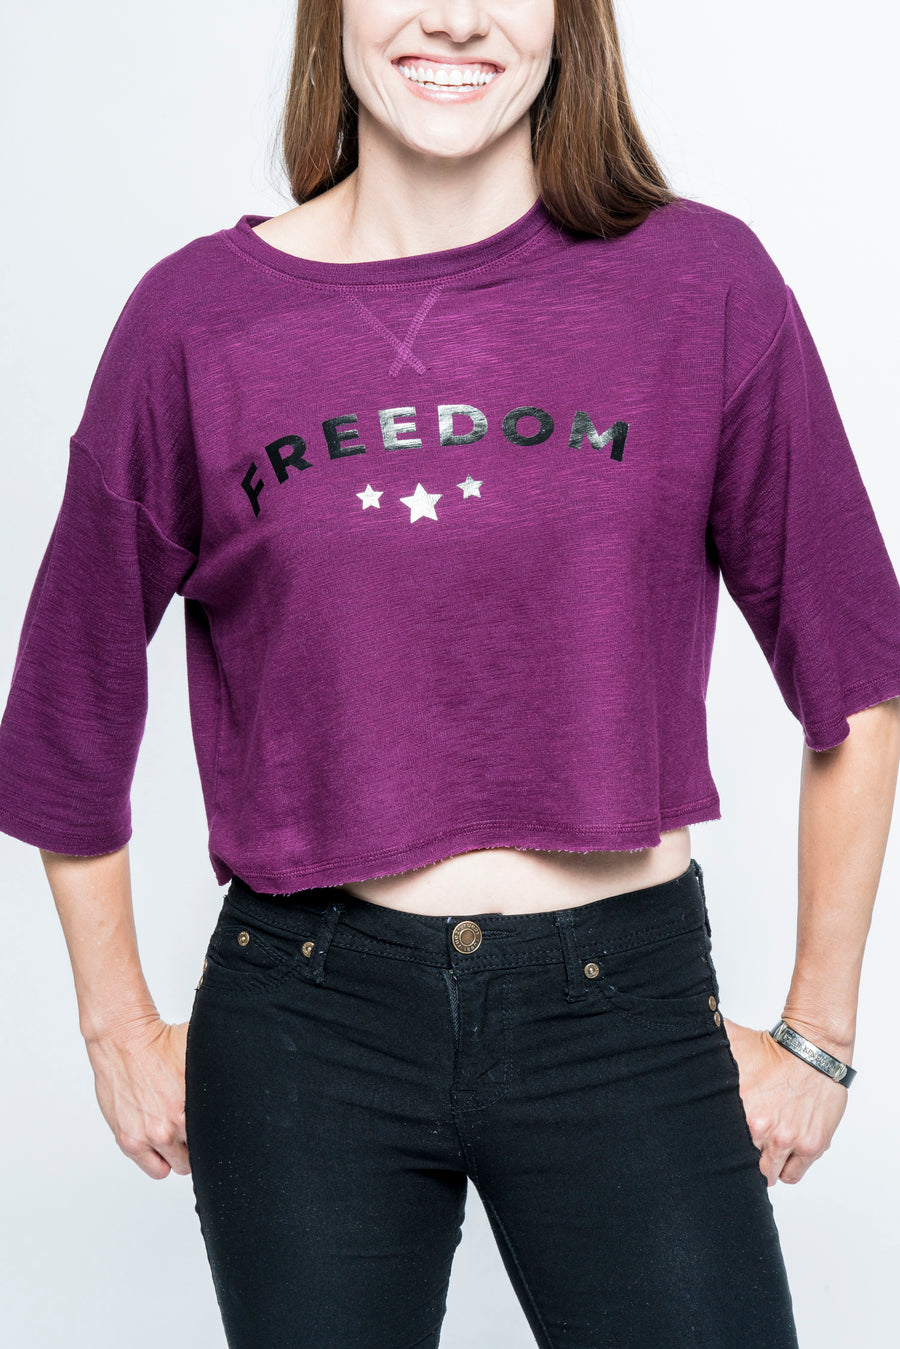 Freedom Cropped Top